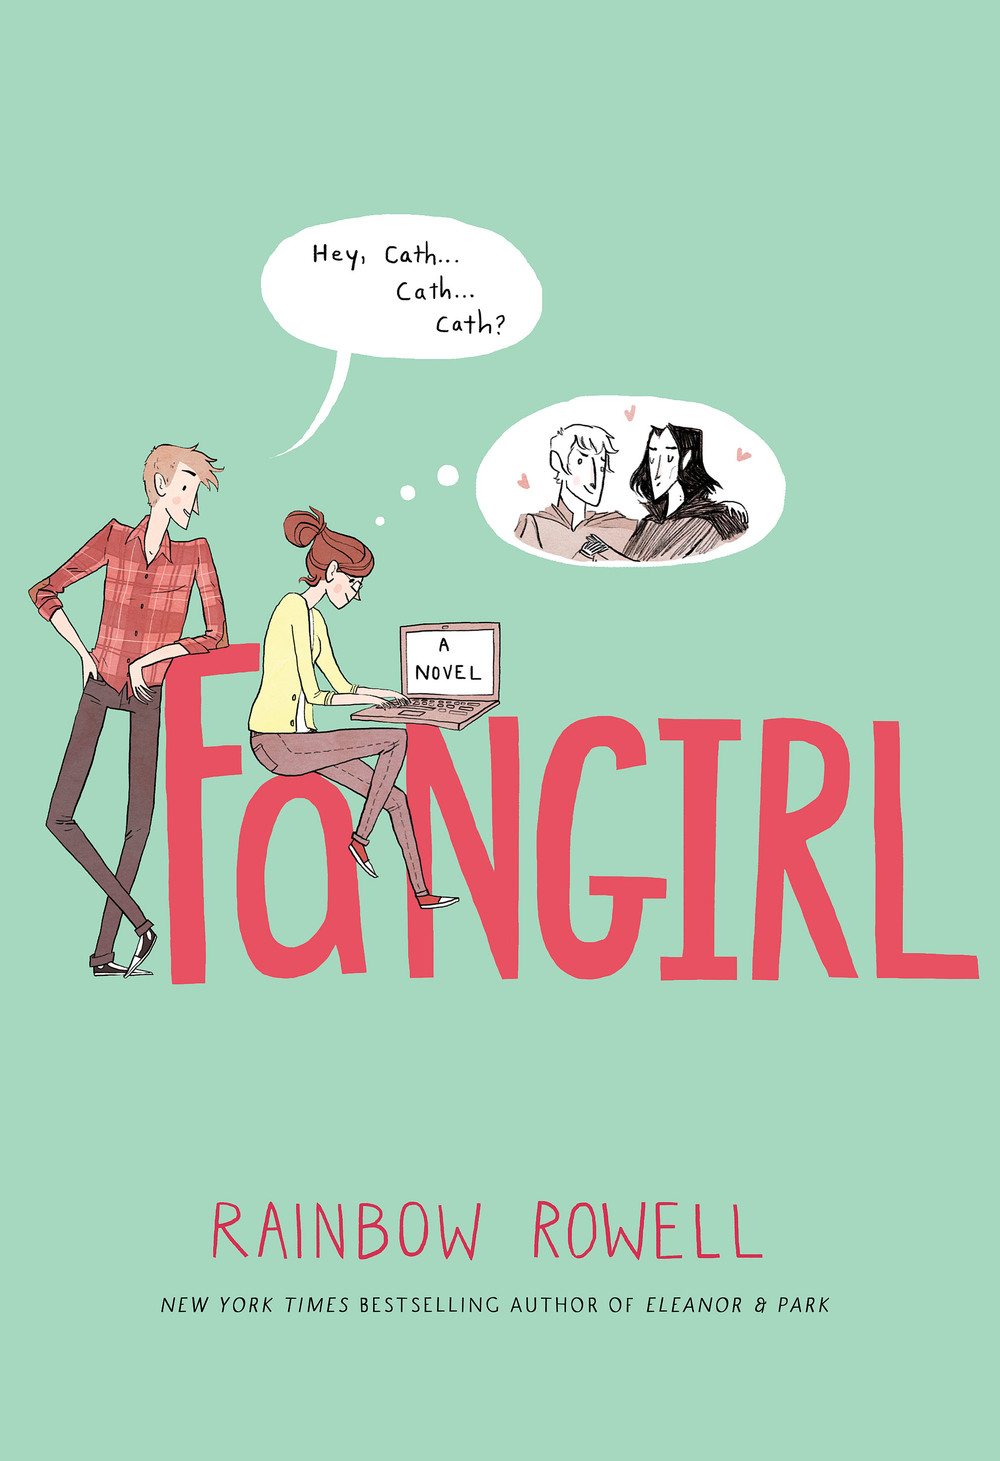 Book Puke: Fangirl by Rainbow Rowell